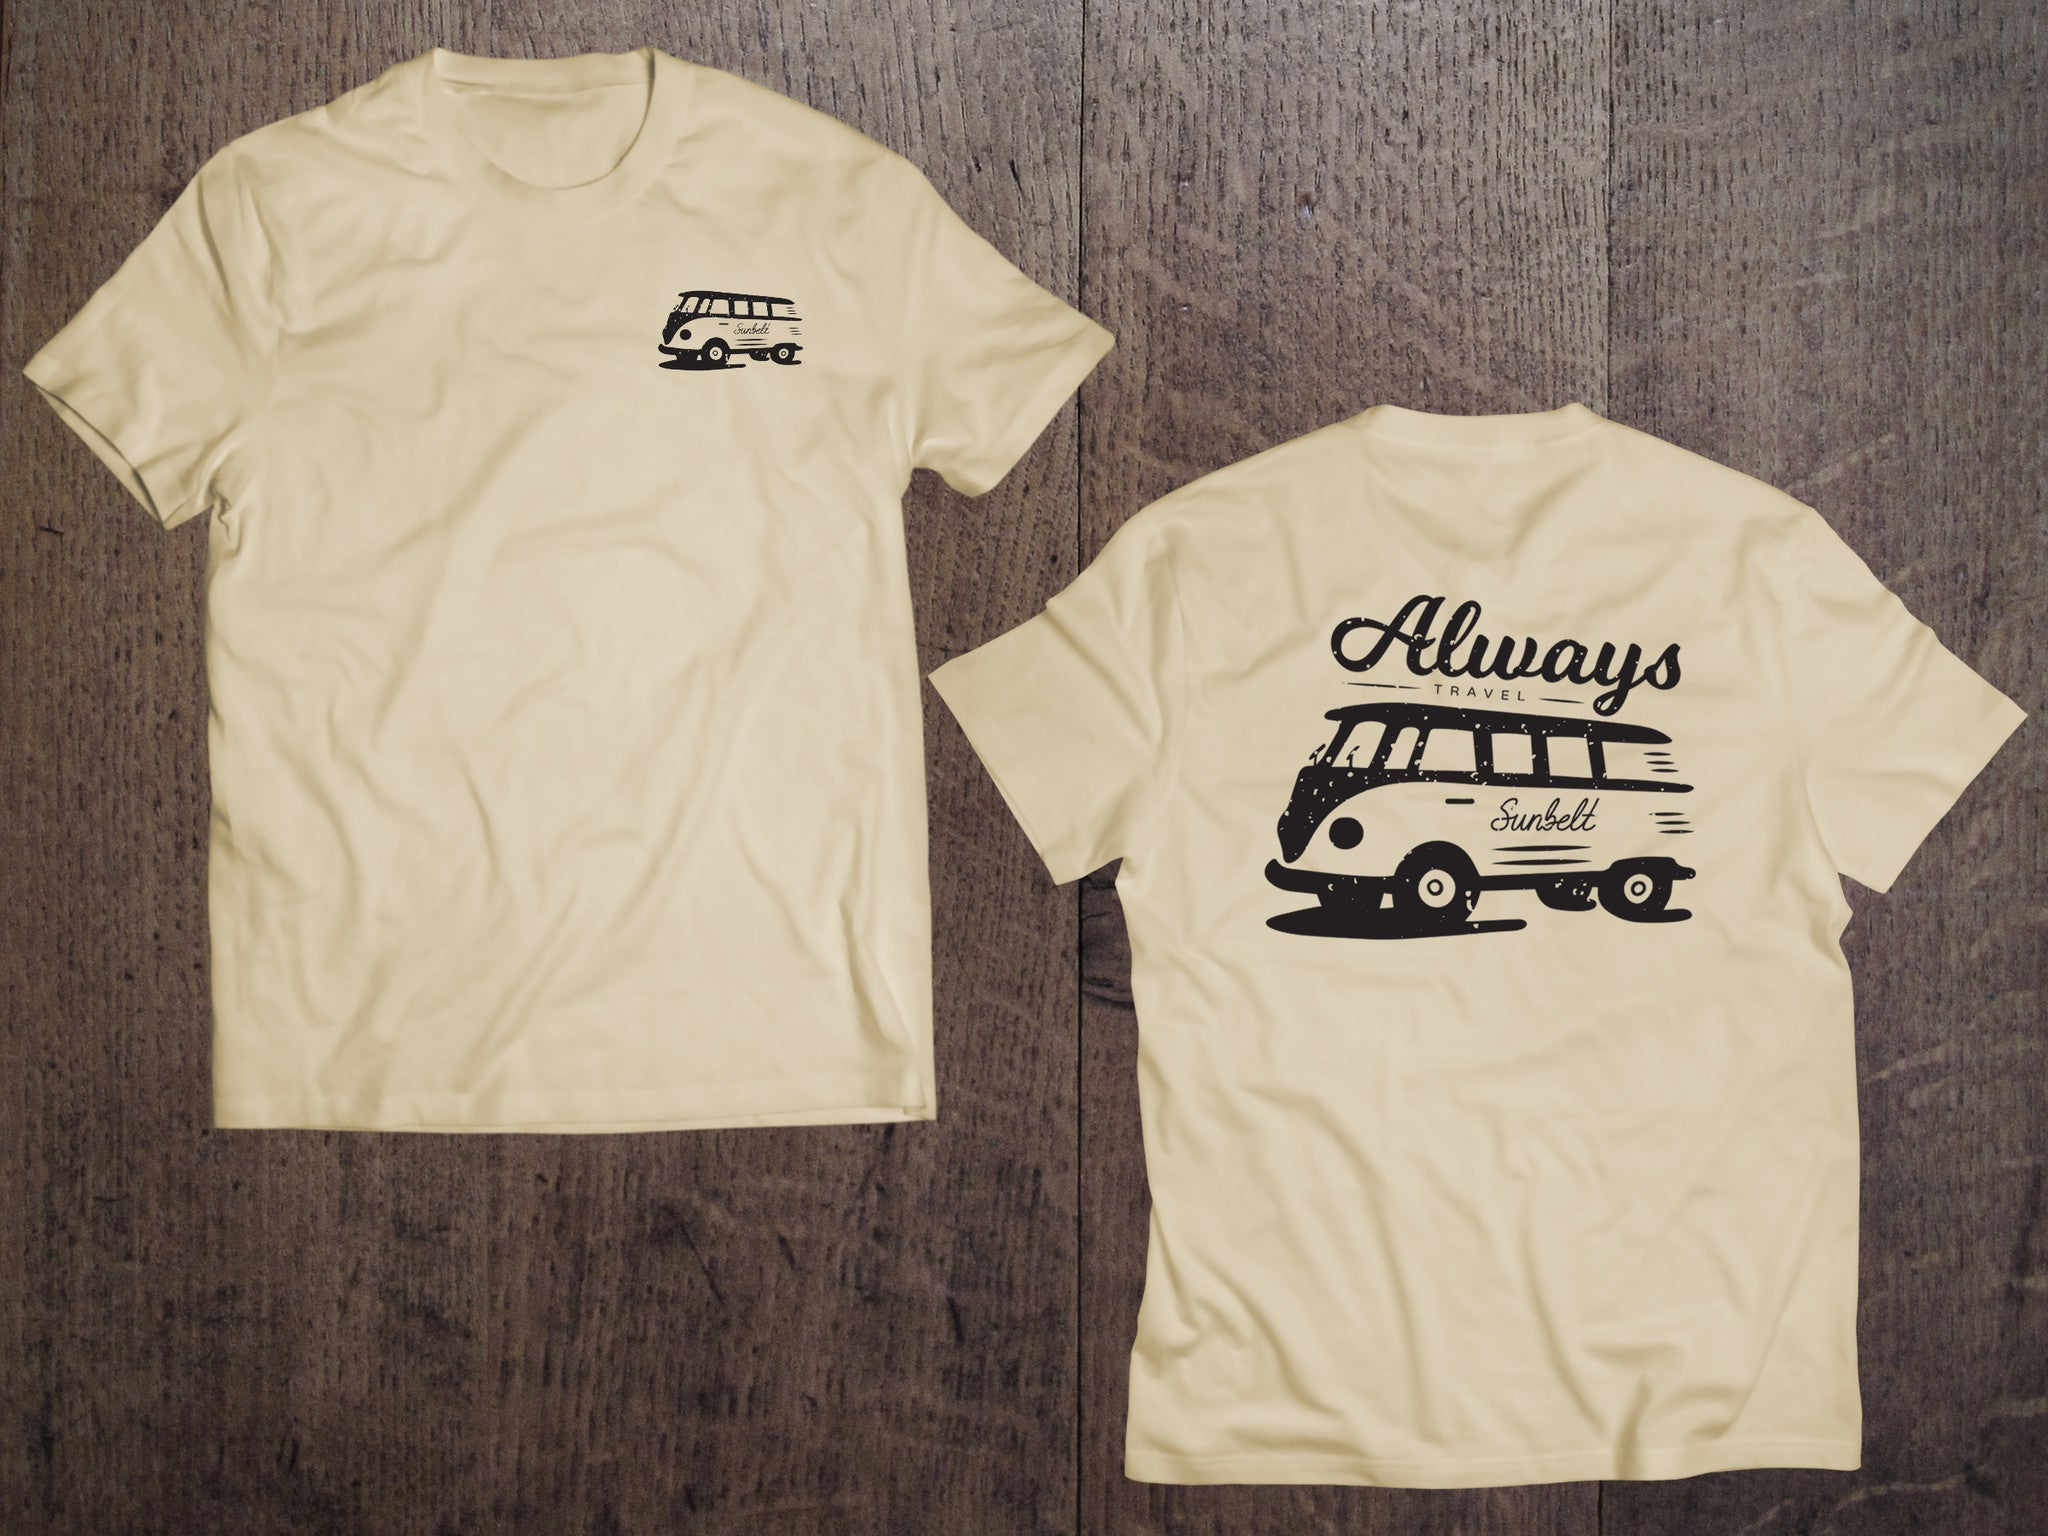 Roadtripper Tee